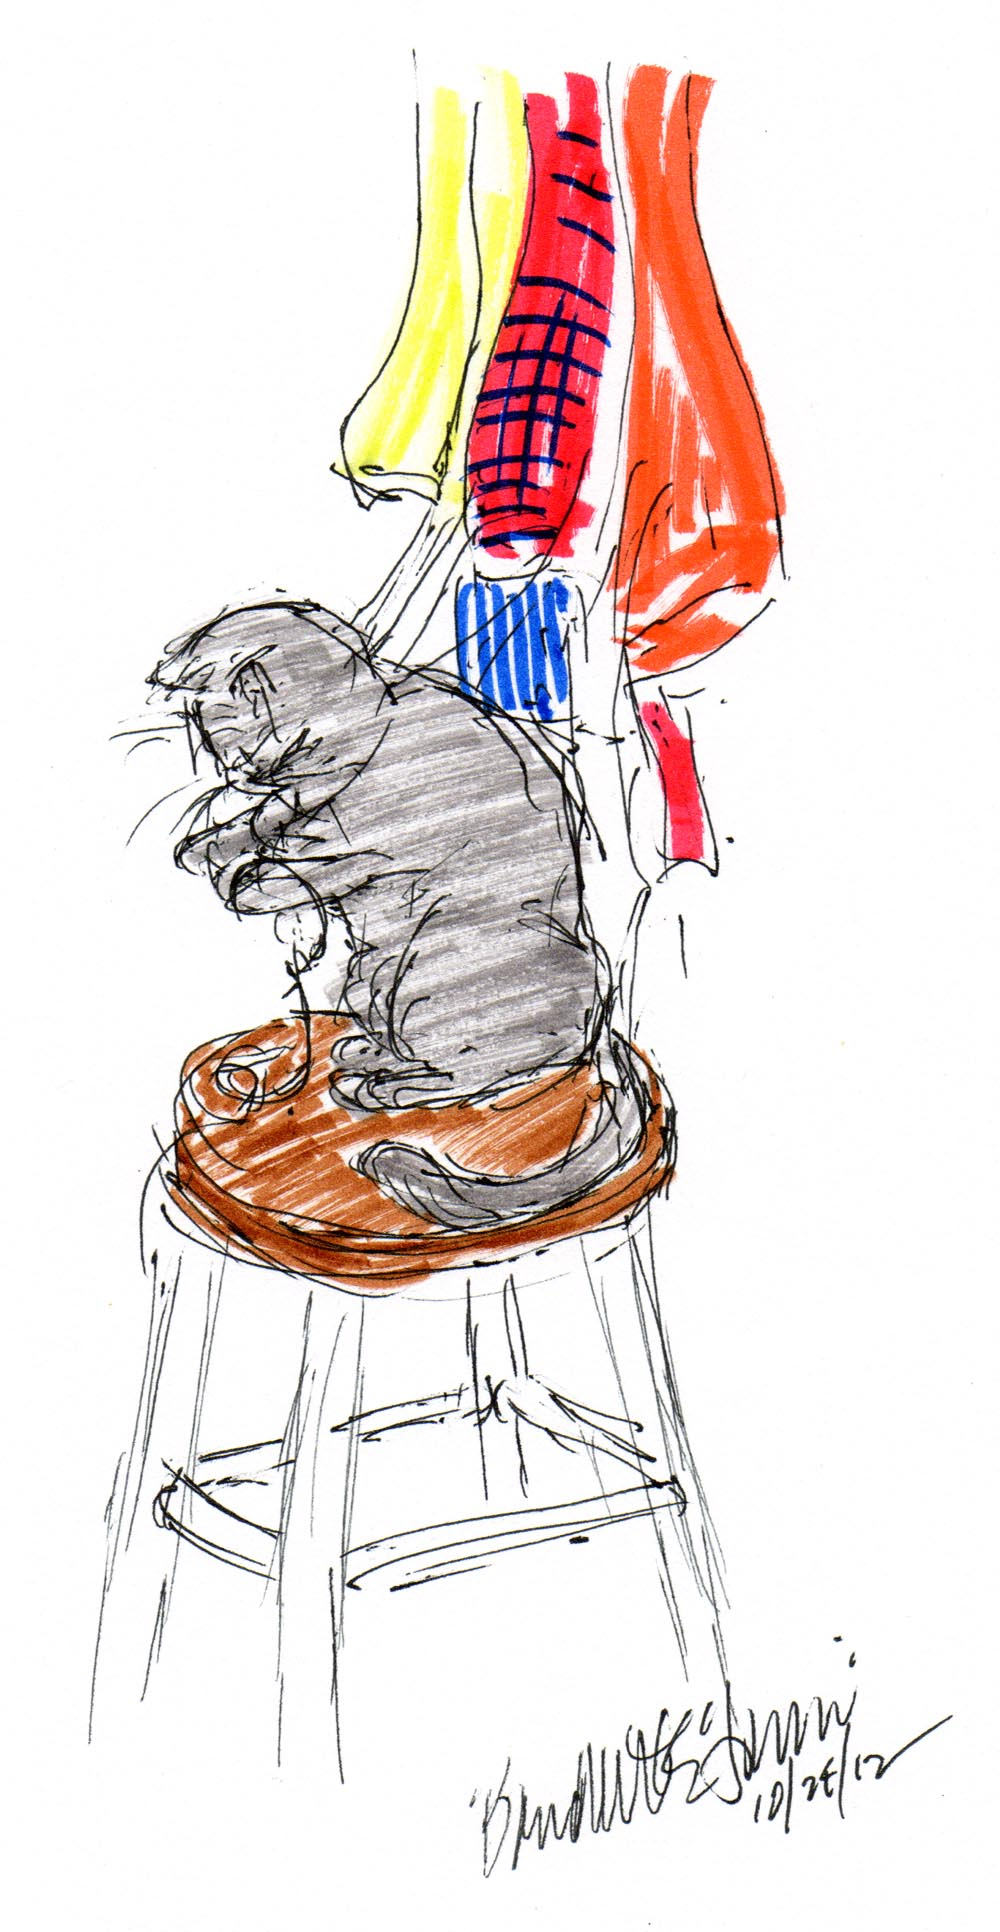 ink and marker sketch of cat with apron strings